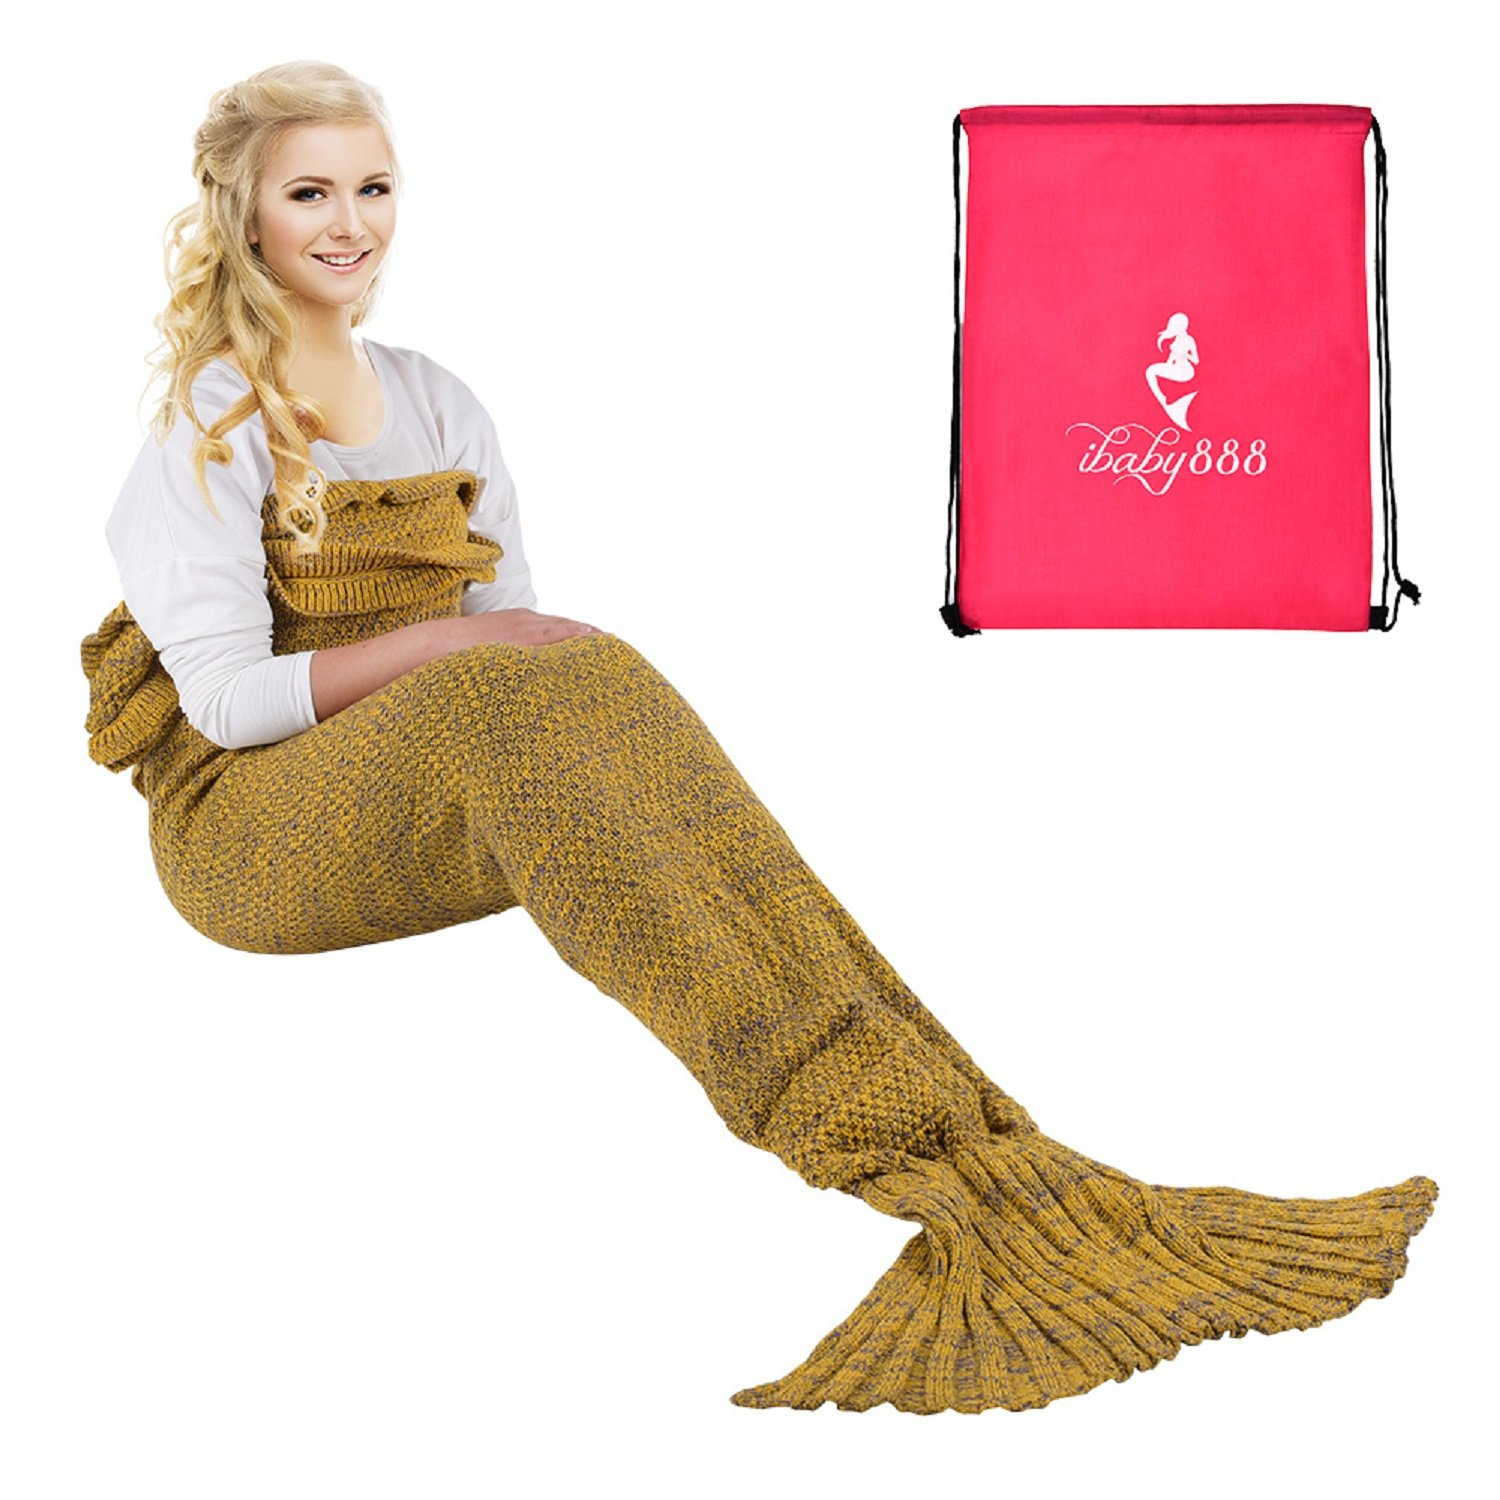 iBaby888 Wearable Mermaid Tail Blanket Crochet, All Seasons Warm Knitted Bed Blanket Sofa Quilt Living Room Sleeping Bag for Adults, Classic Pattern with Lace, 70.9'' x 35.5'' (180 x 90cm), Yellow